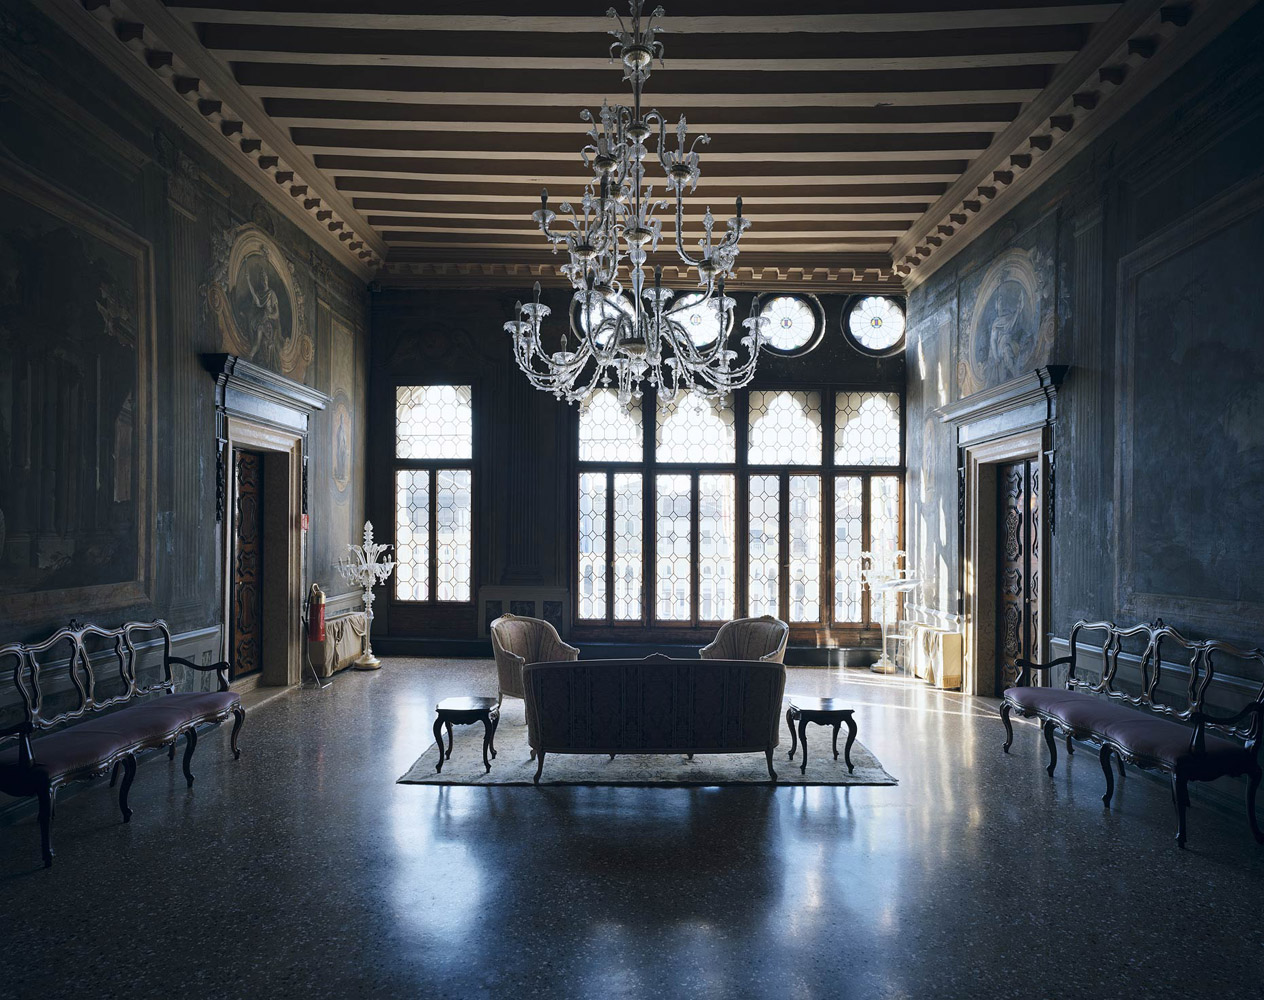 Ca' Sagredo, Venice, Italy, 2012, by David Leventi. Fujicolor Crystal Archive print of an interior palace room, mounted to Dibond.